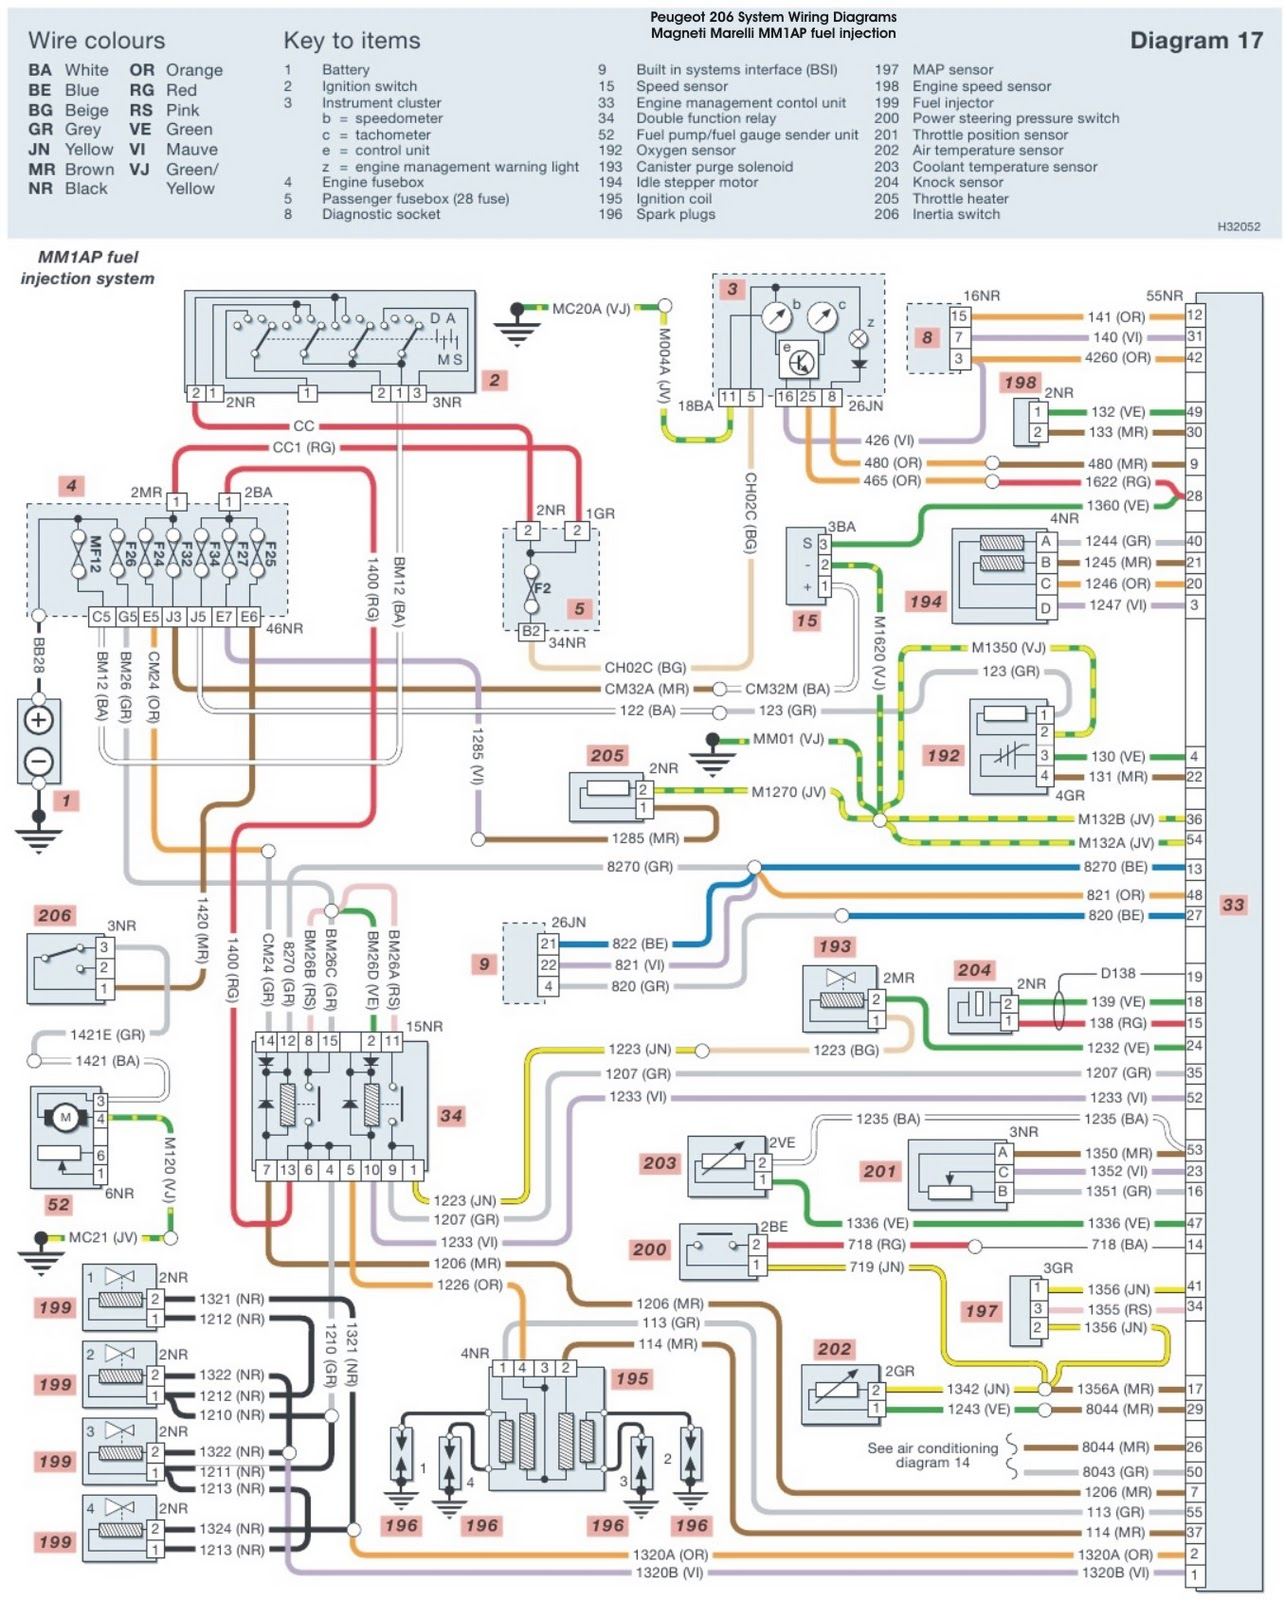 peugeot 206 fuel injection system wiring diagrams ... peugeot 206 wiring diagram radio